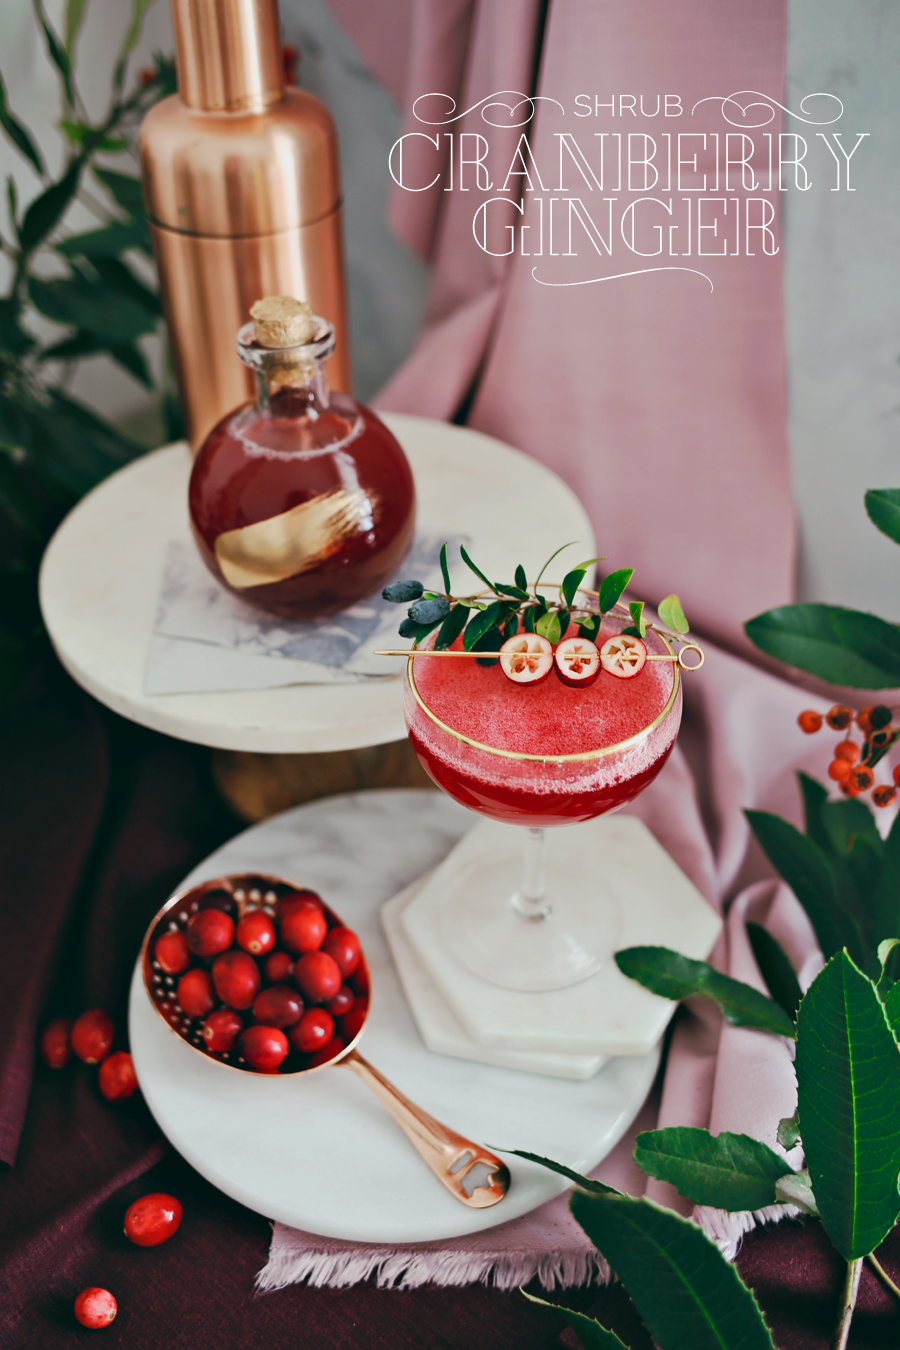 02_Cranberry-Ginger-Shrub-Cocktail-Dine-X-Design.jpg